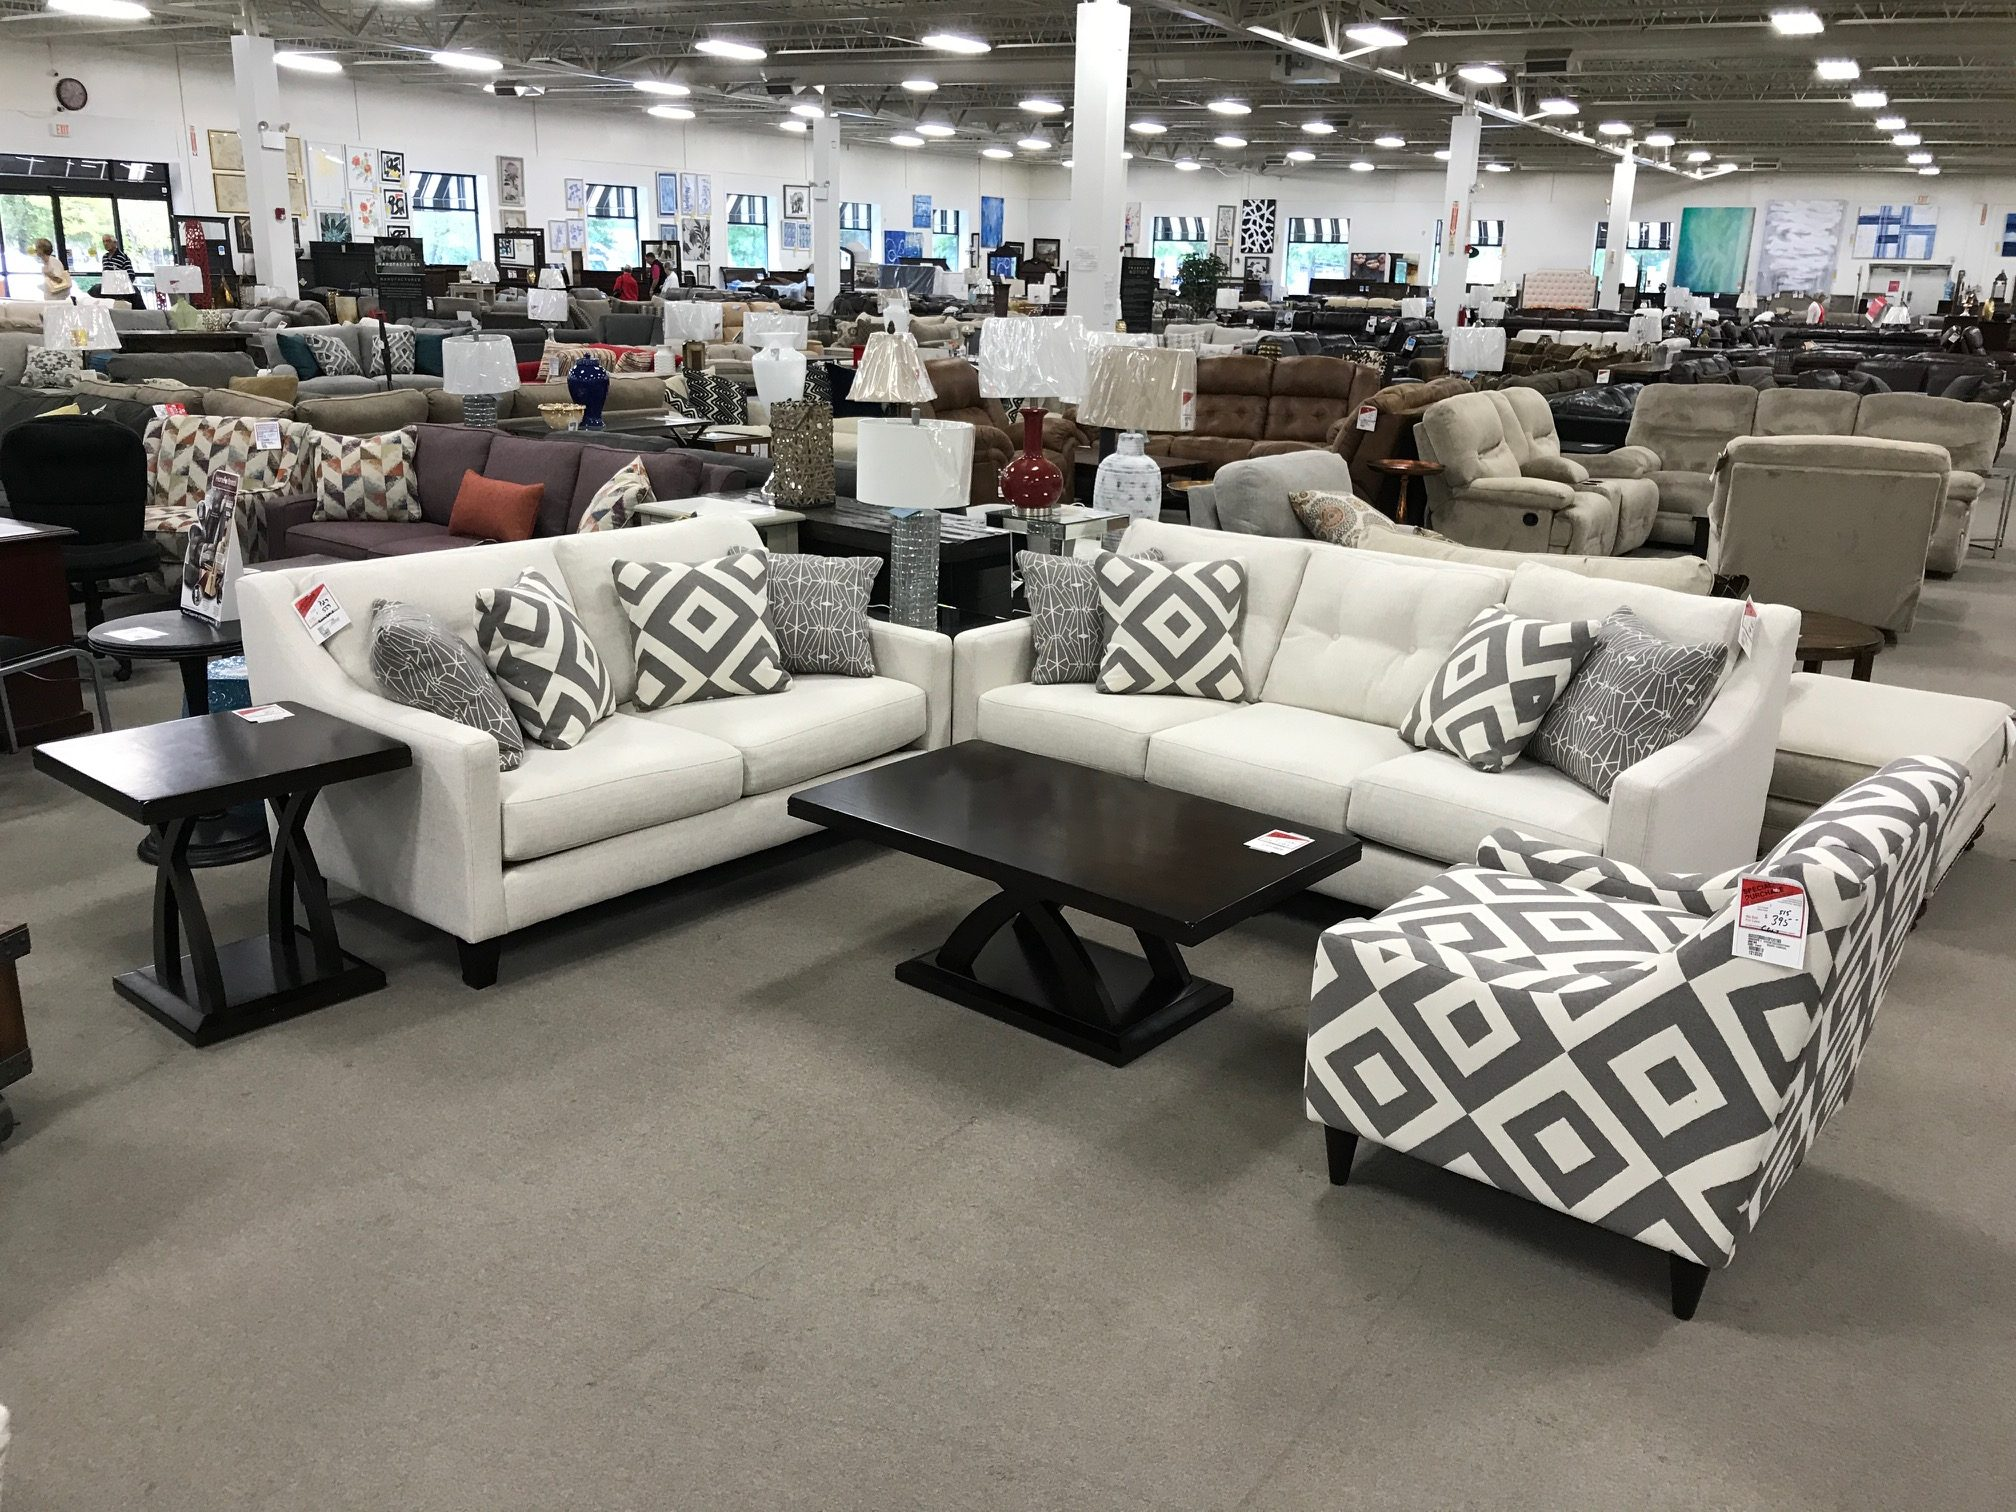 Sugarshack living room set heavner furniture market for Furniture market